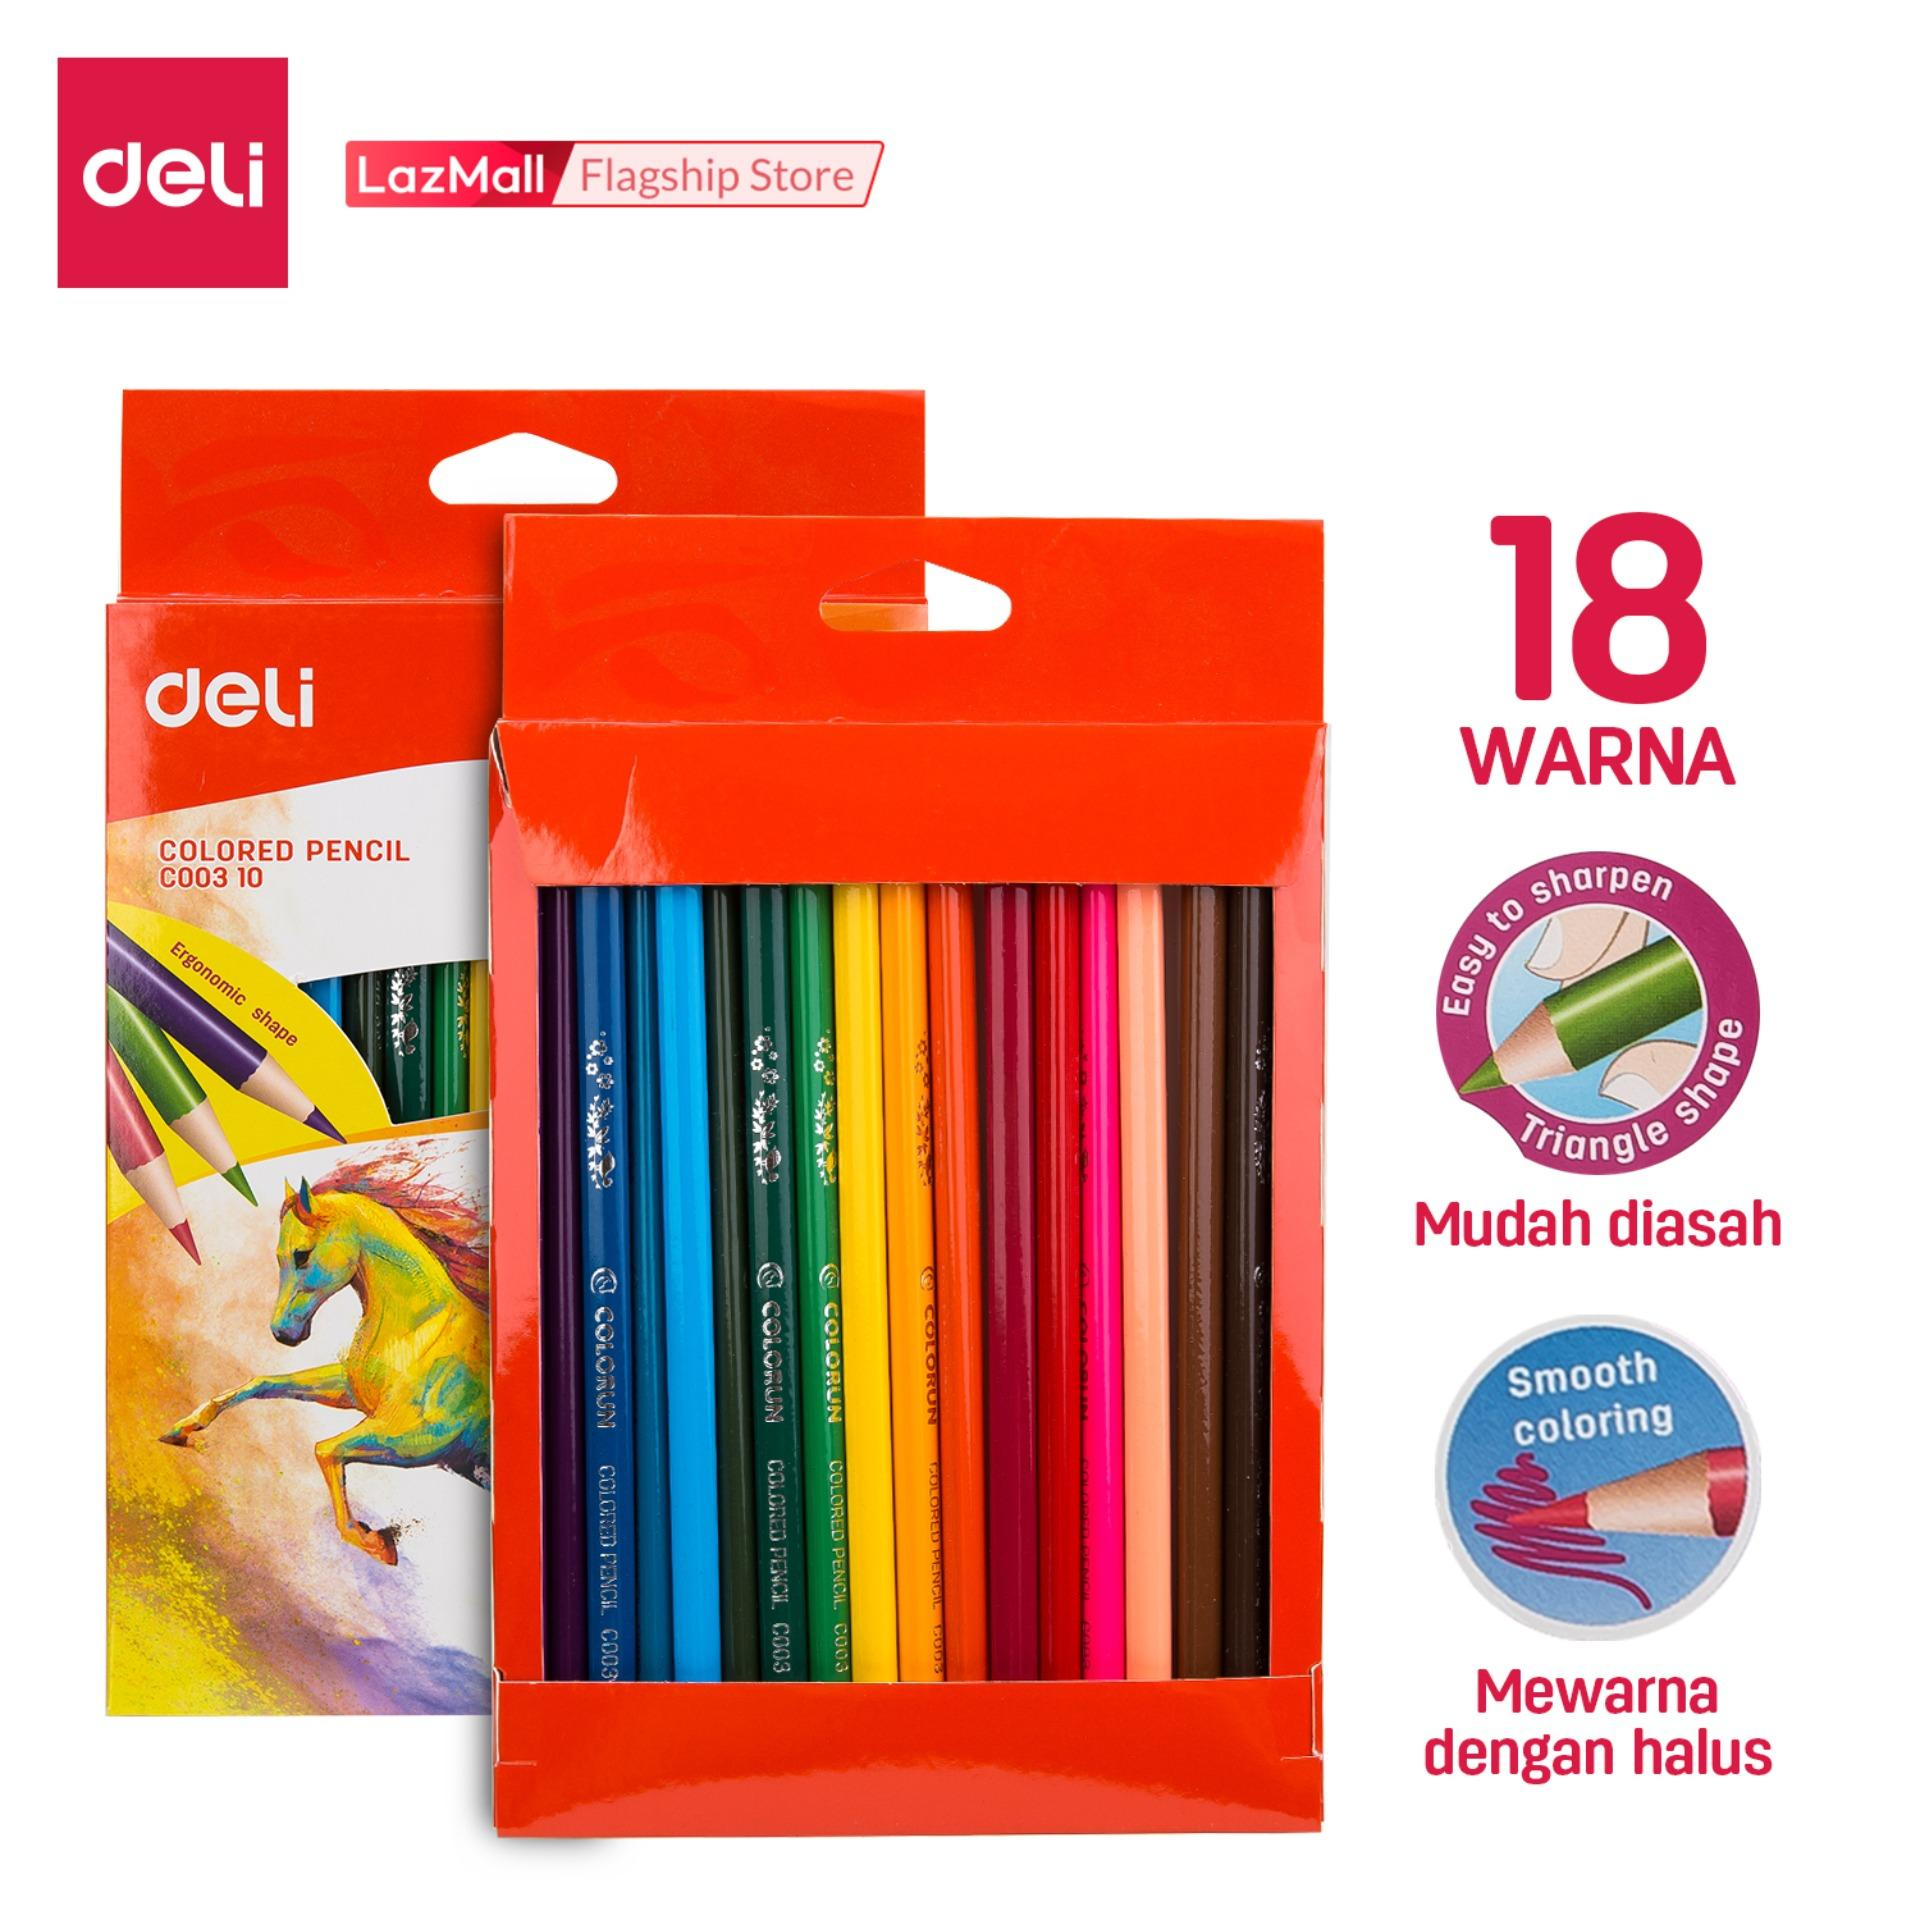 Deli Pensil Warna Sekolah / School Color Pencil - 18C 18warna/box / 18color/box - COLOR RUN Terbuat dari poplar, mudah dipertajam, timah berkualitas / COLOR RUN Made from poplar, easy to sharpen, Good quality lead (EC00310)